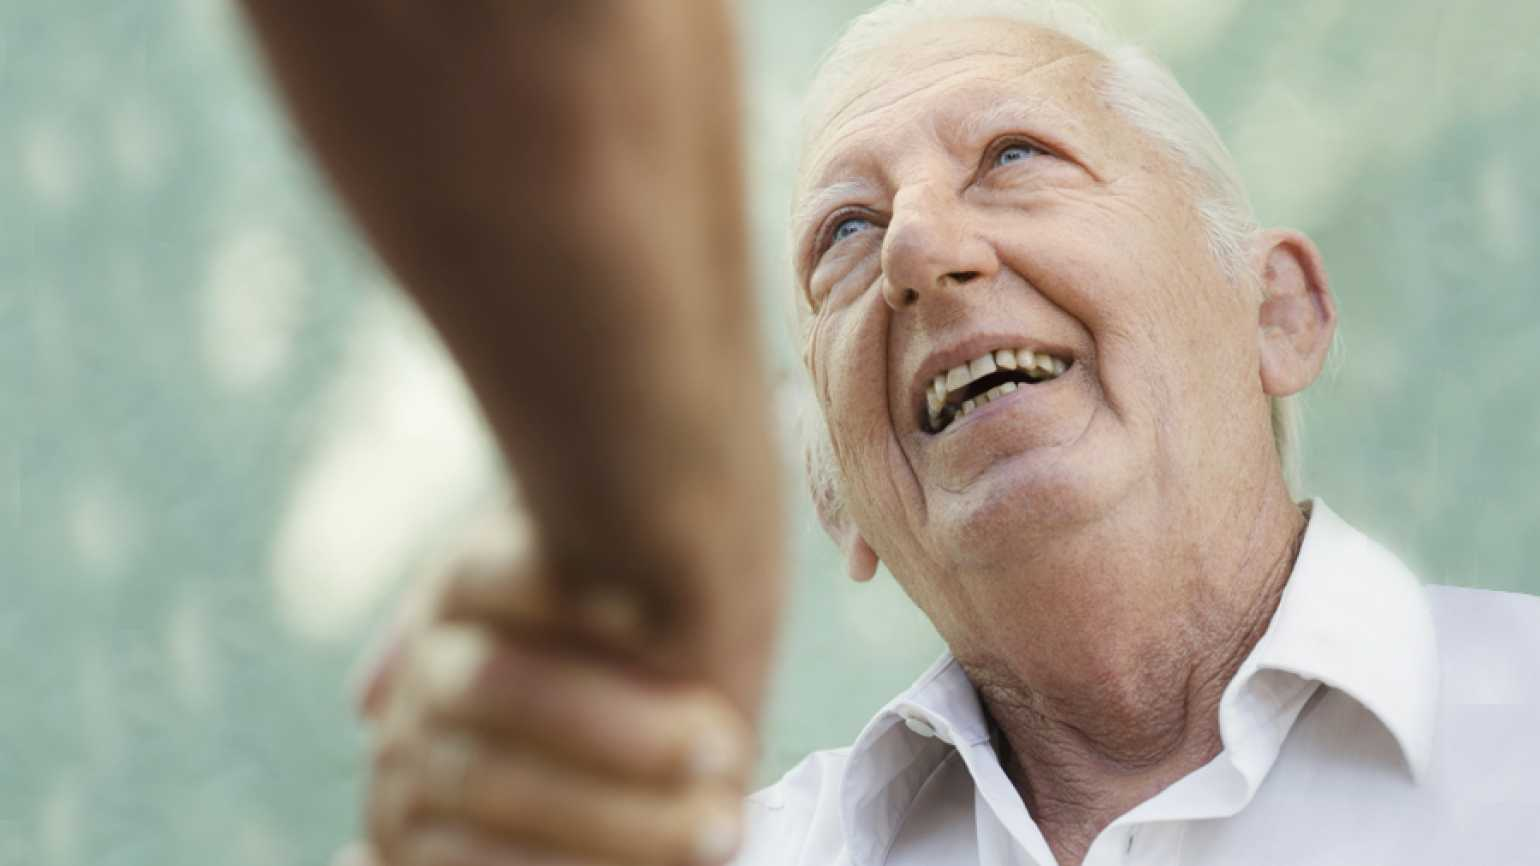 The Making of a Caregiver